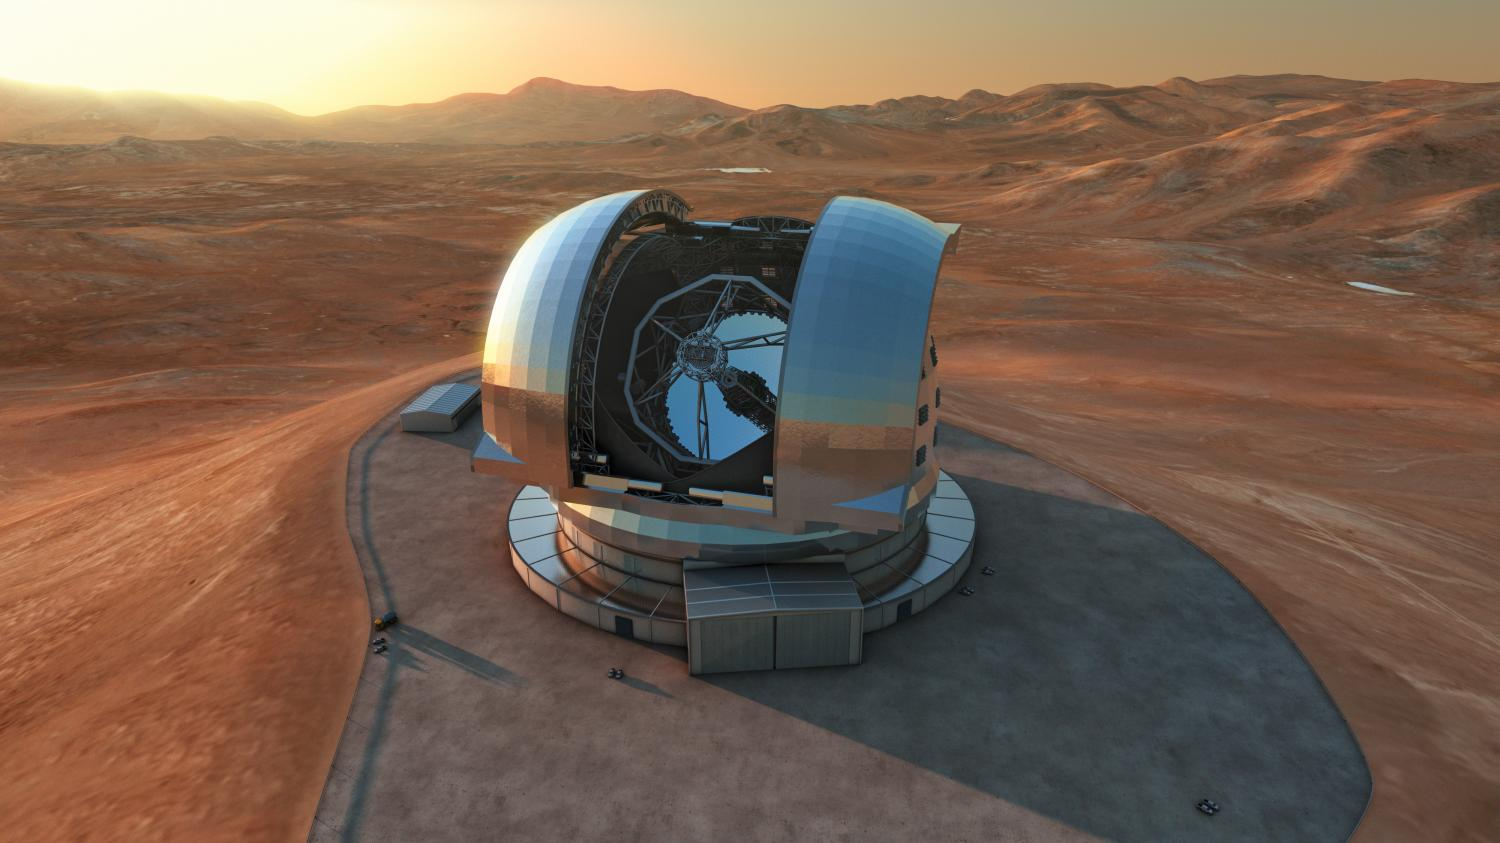 Michelle Bachelet Inaugurates Construction Of World's Largest Telescope